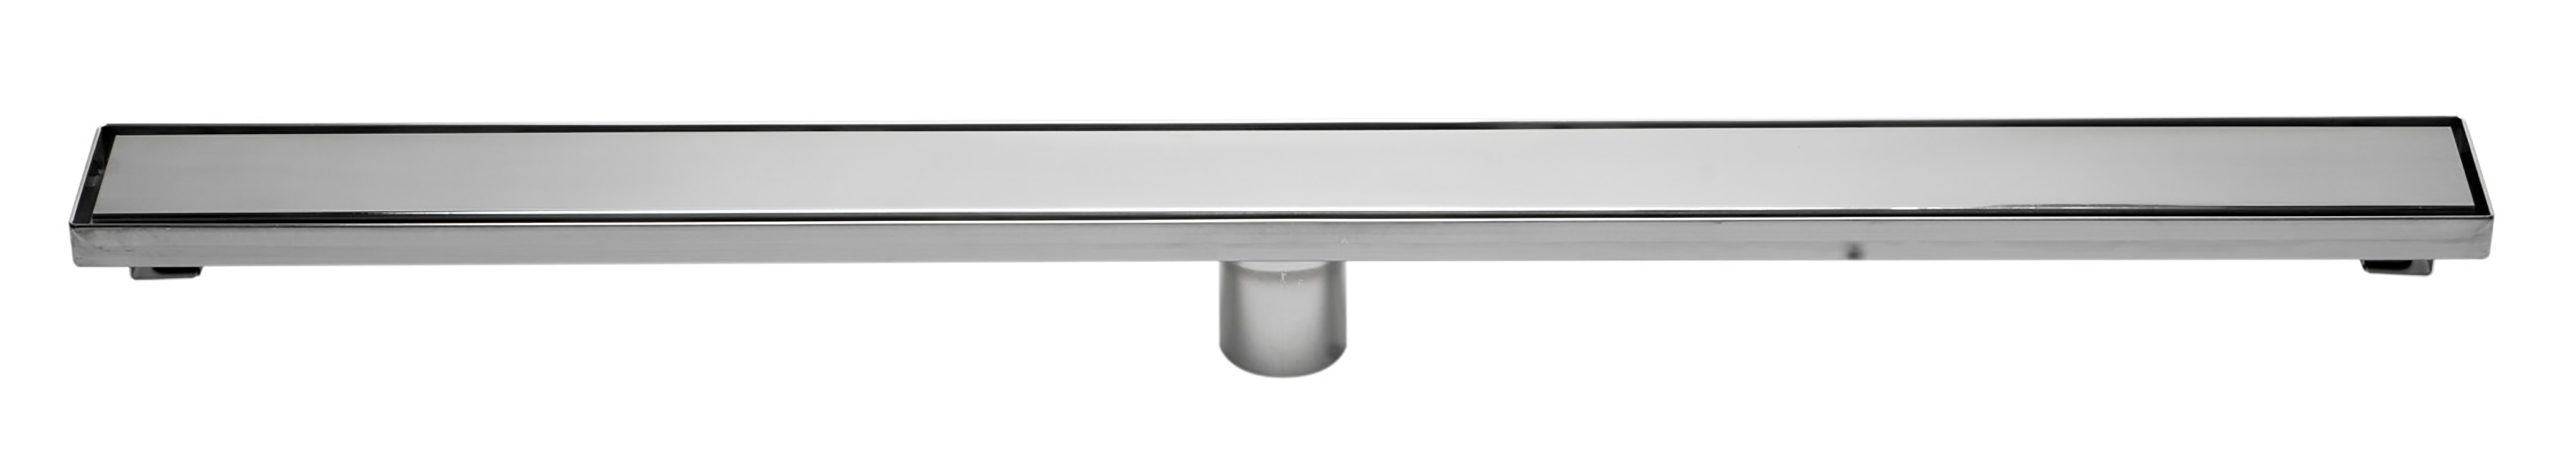 ALFI ABLD36B-PSS Modern Polished Stainless Steel Linear Shower Drain with Solid Cover - 36 in.